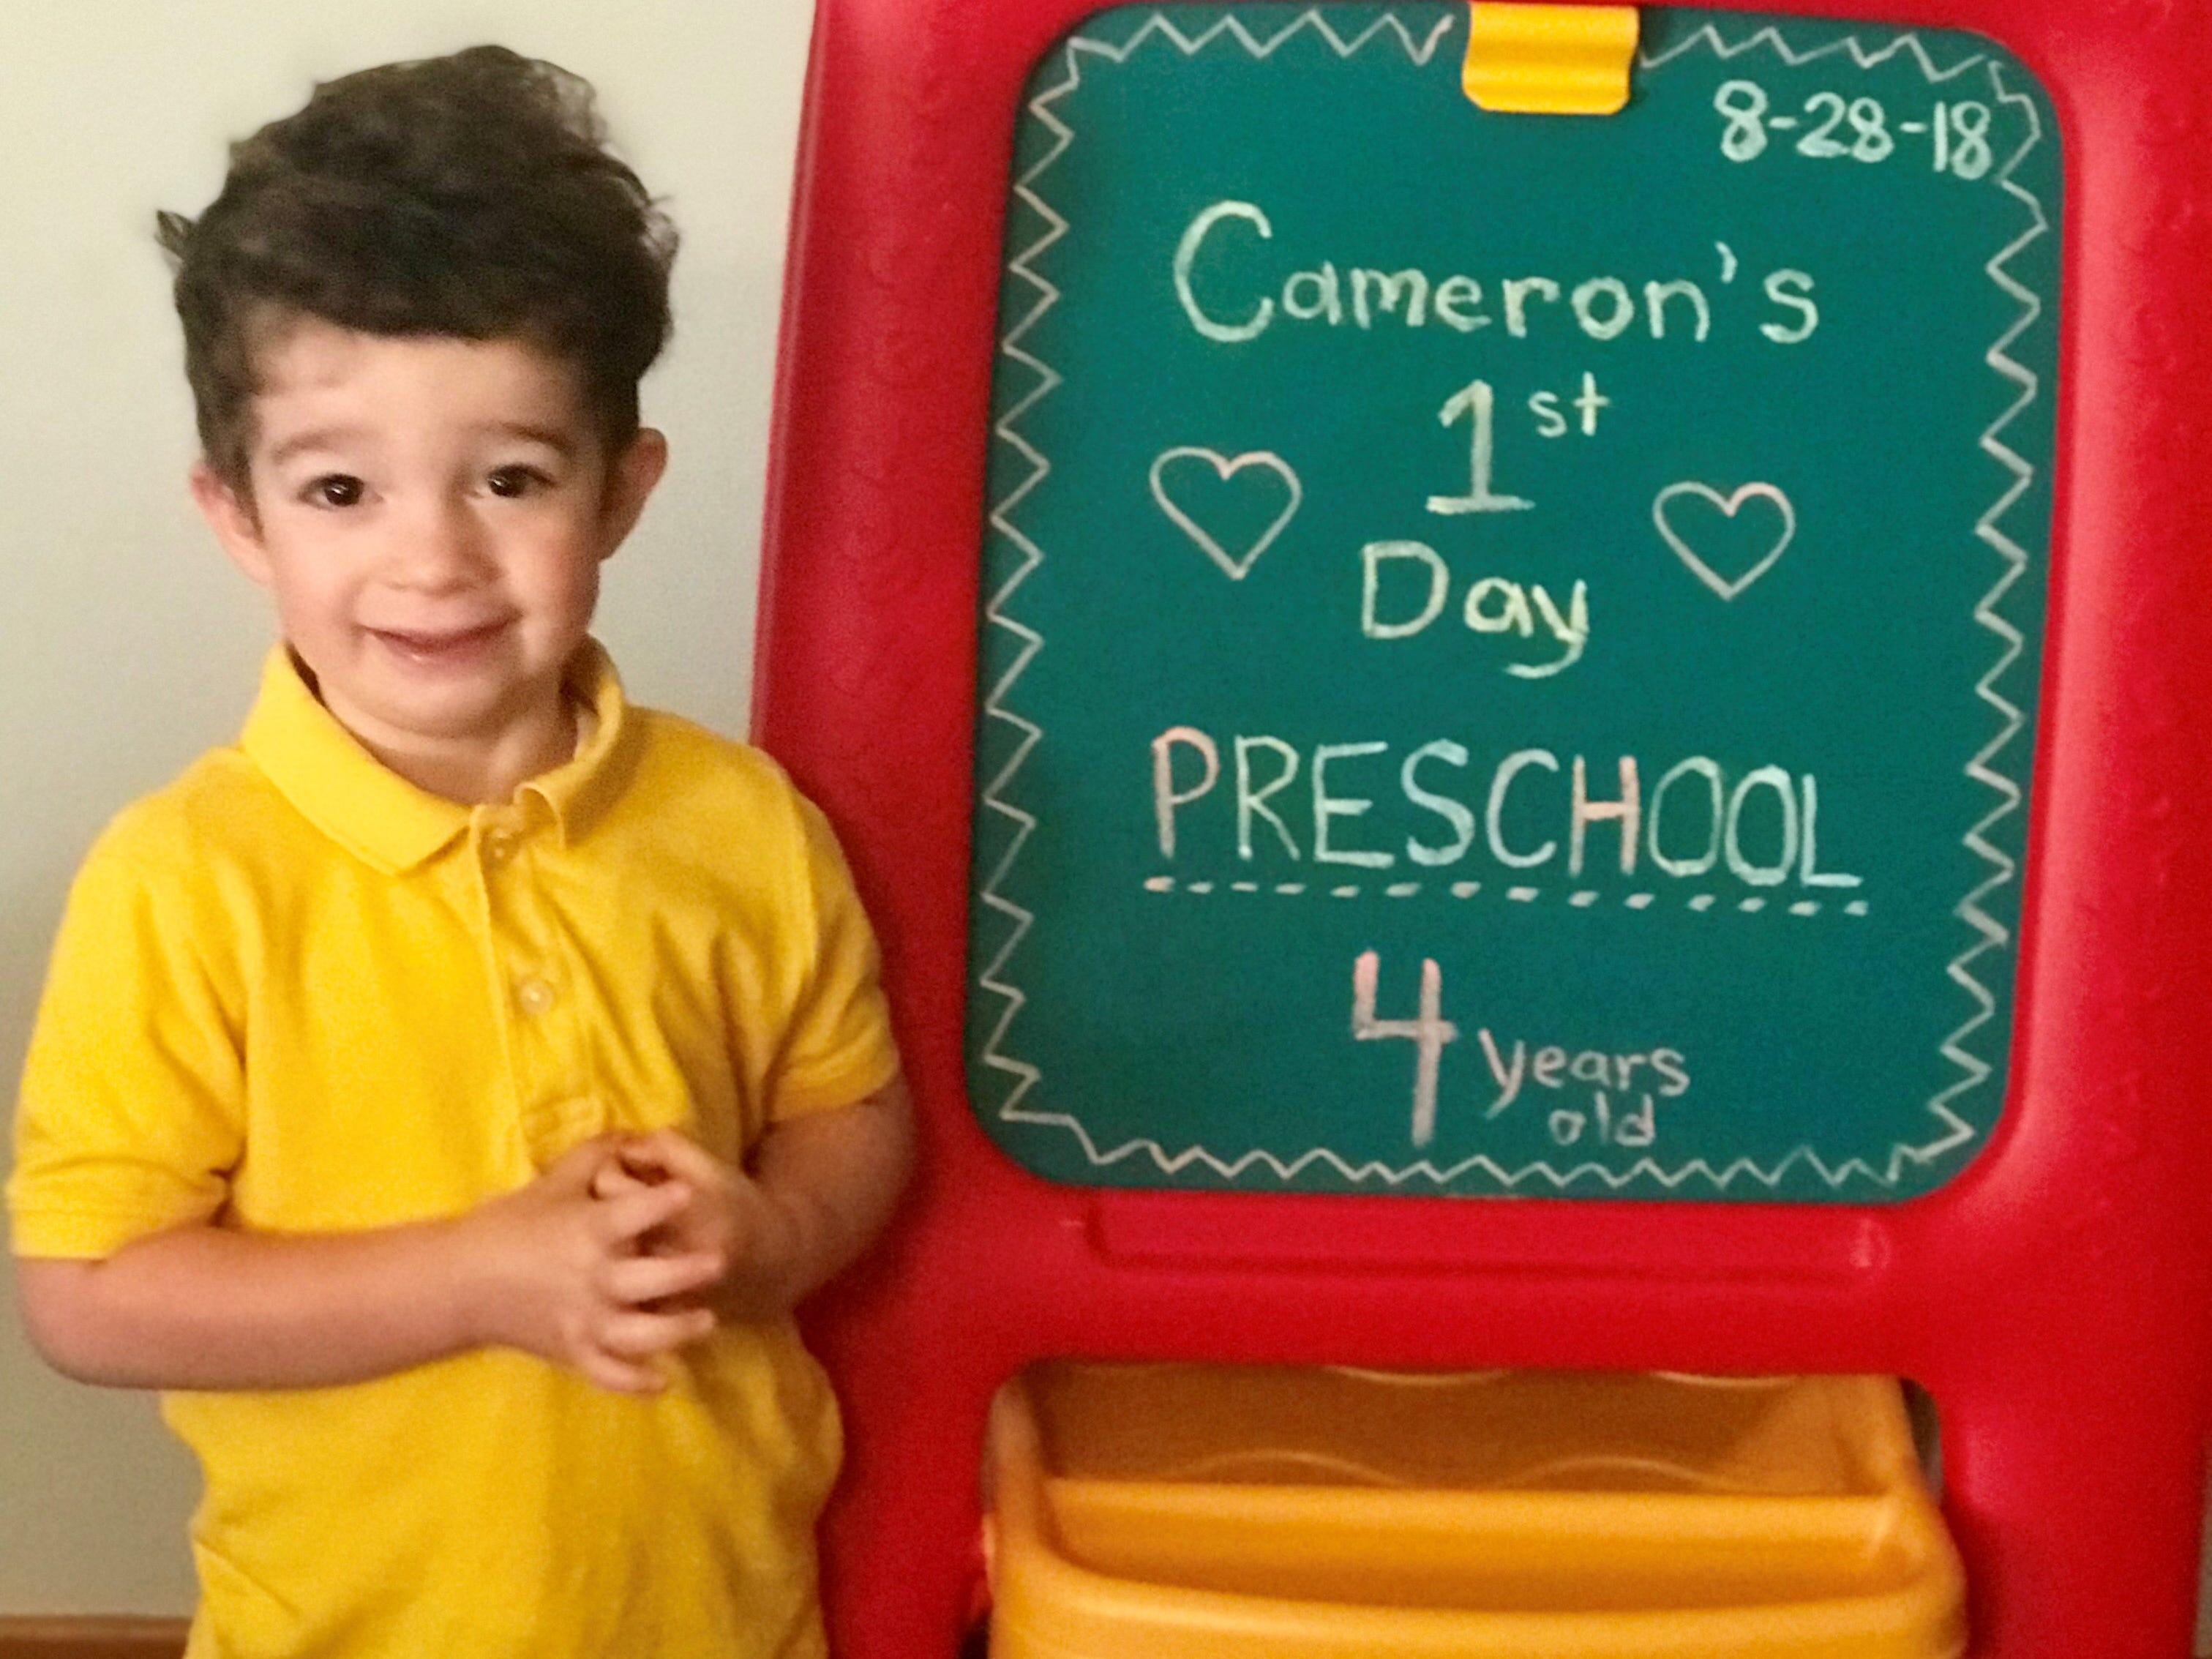 Cameron on his first day of preschool at Trinity Lutheran School in Marshfield.